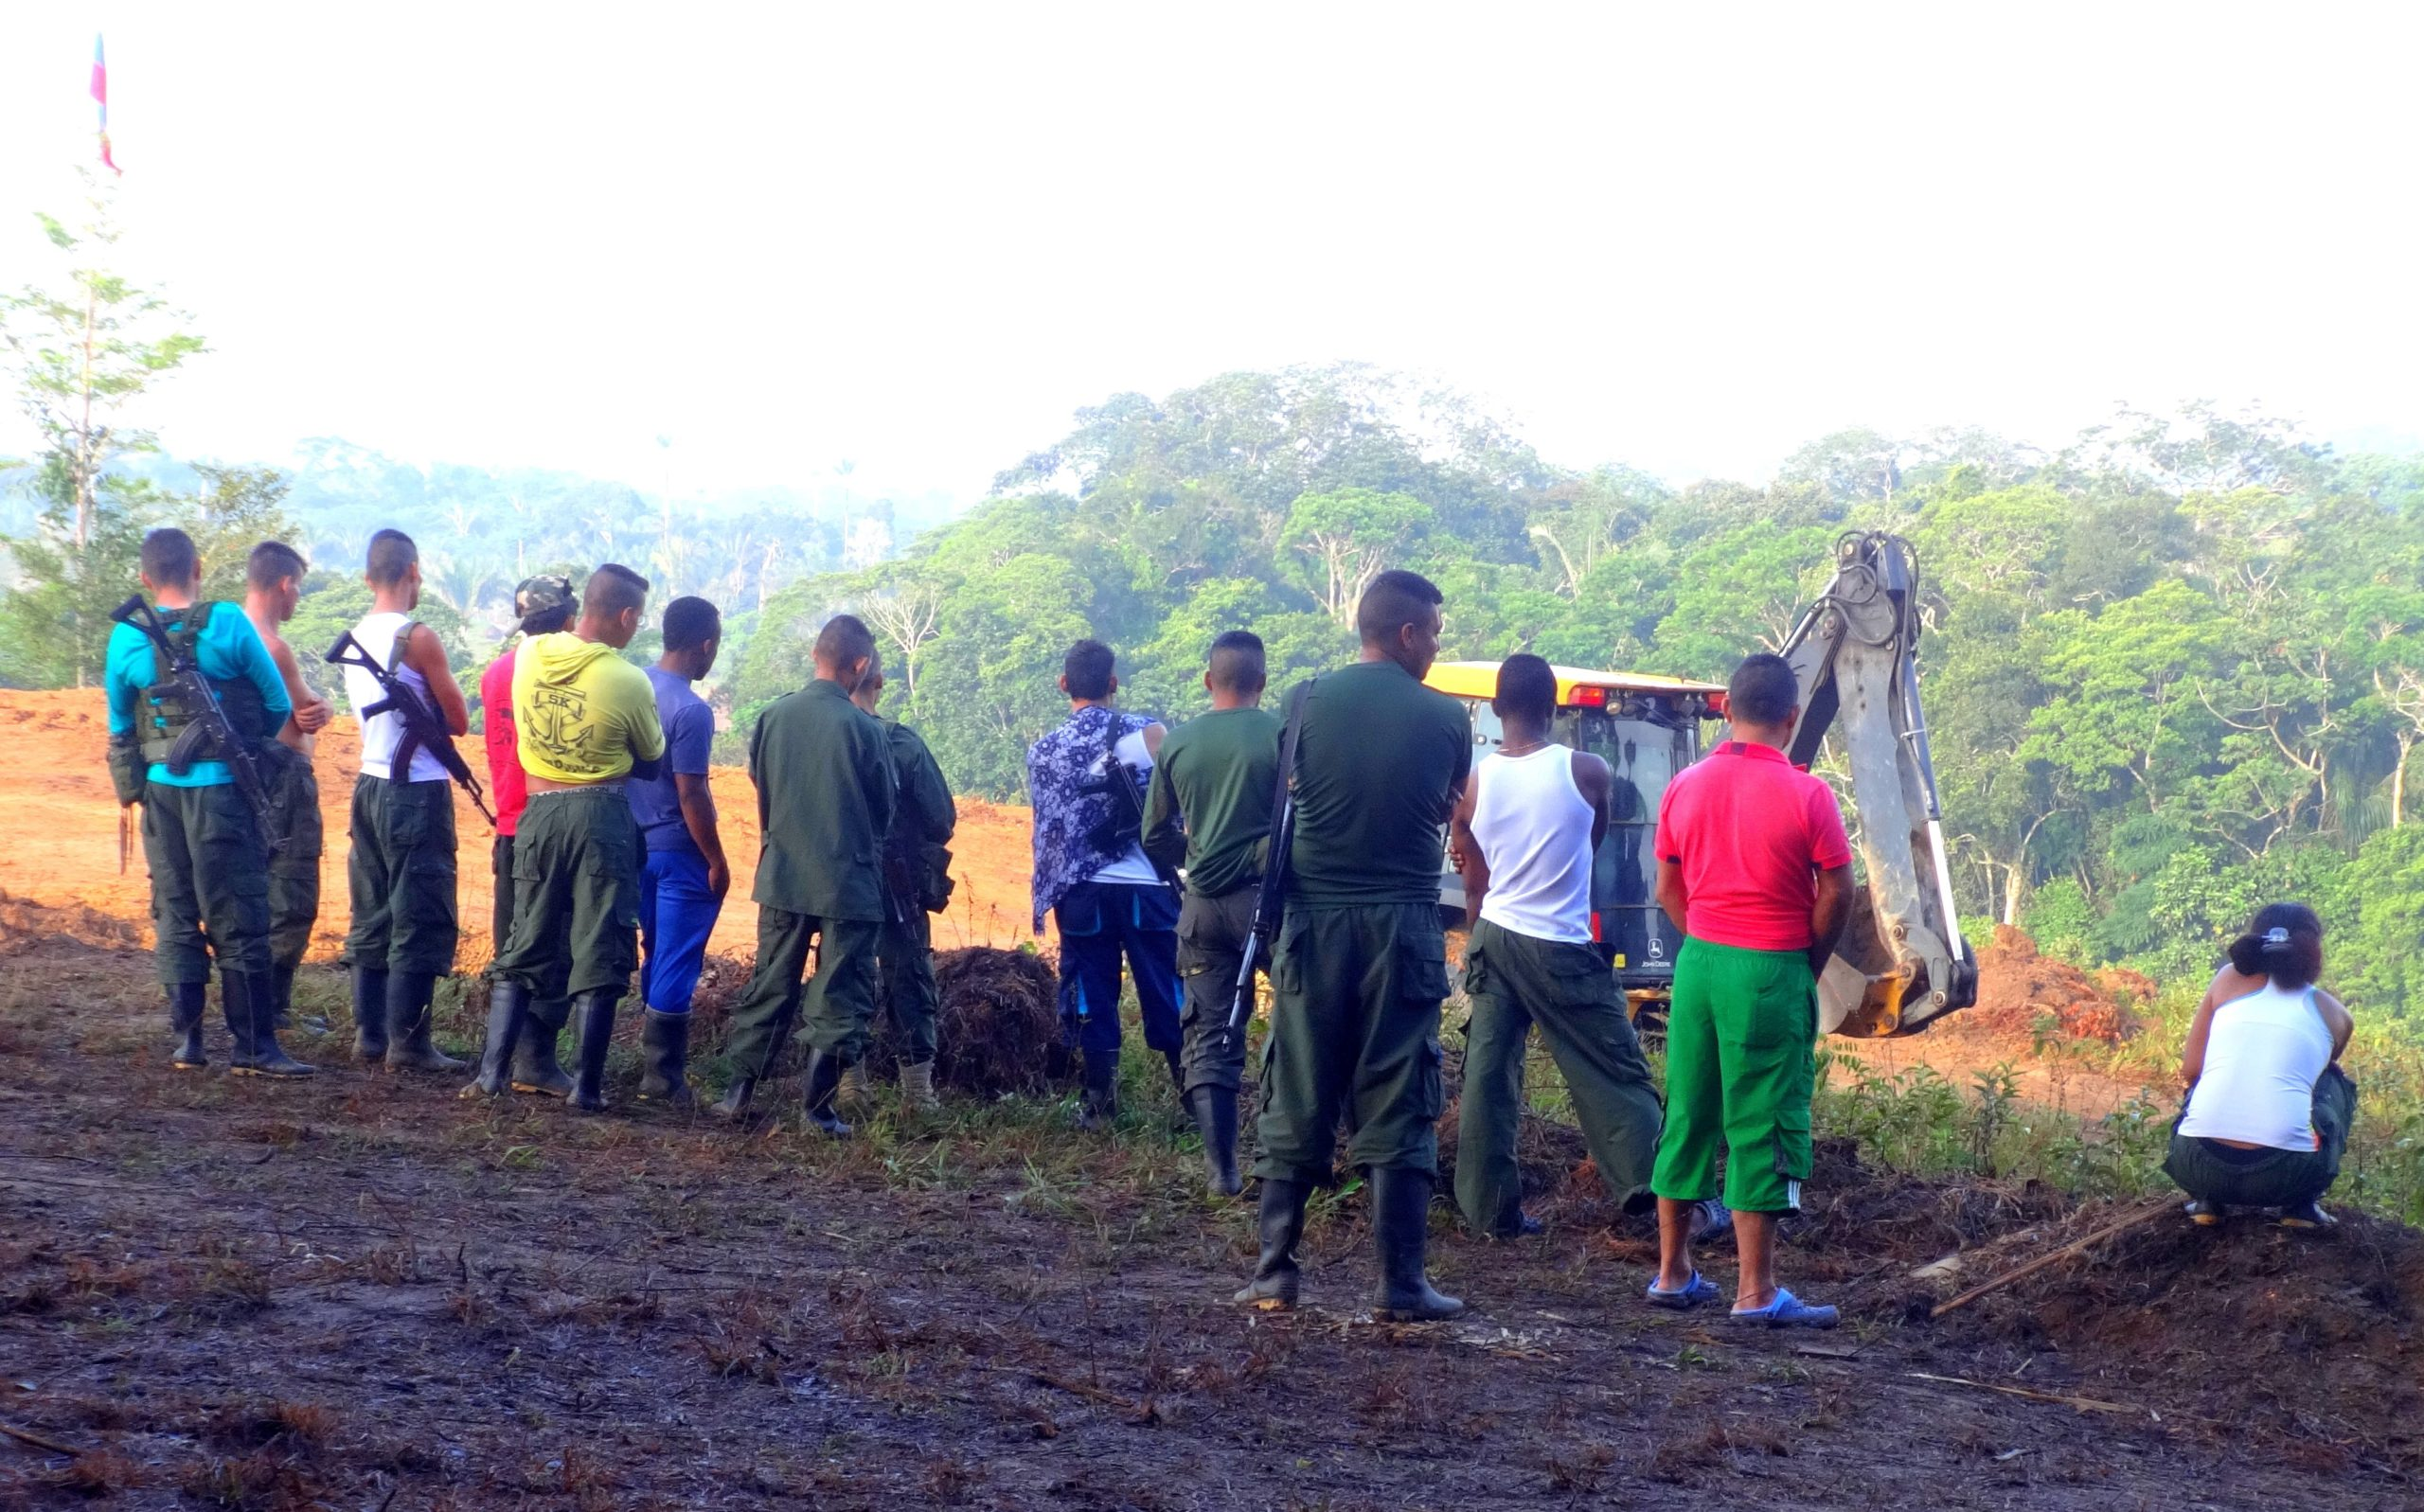 Photograph of FARC ex-combatants in a disarmament camp in Colinas, Guaviare, in the south of Colombia.